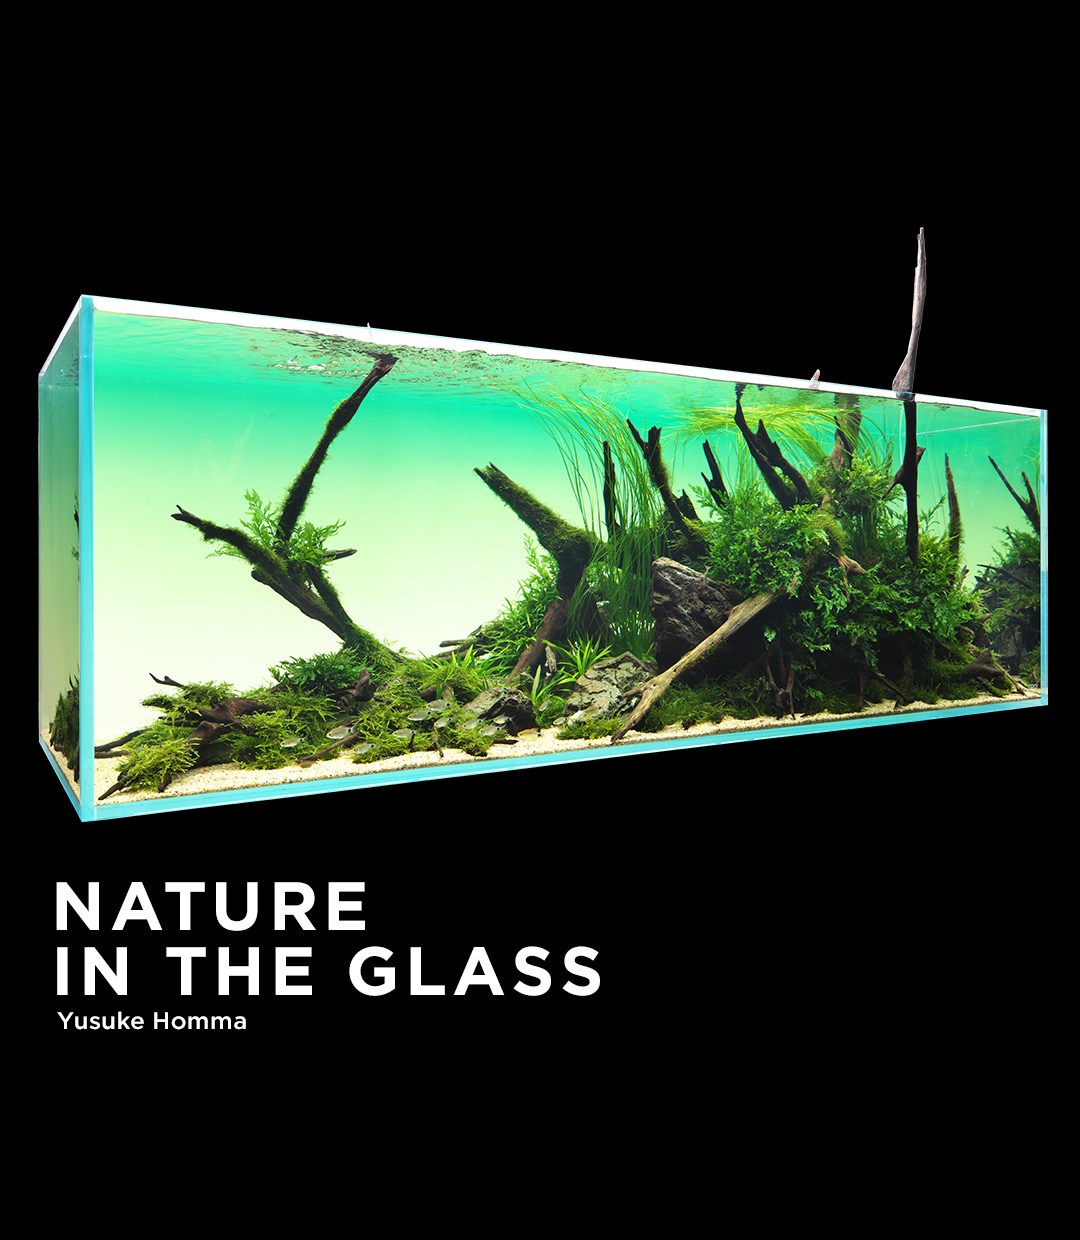 NATURE IN THE GLASS 「雨過ぎて蒼く」